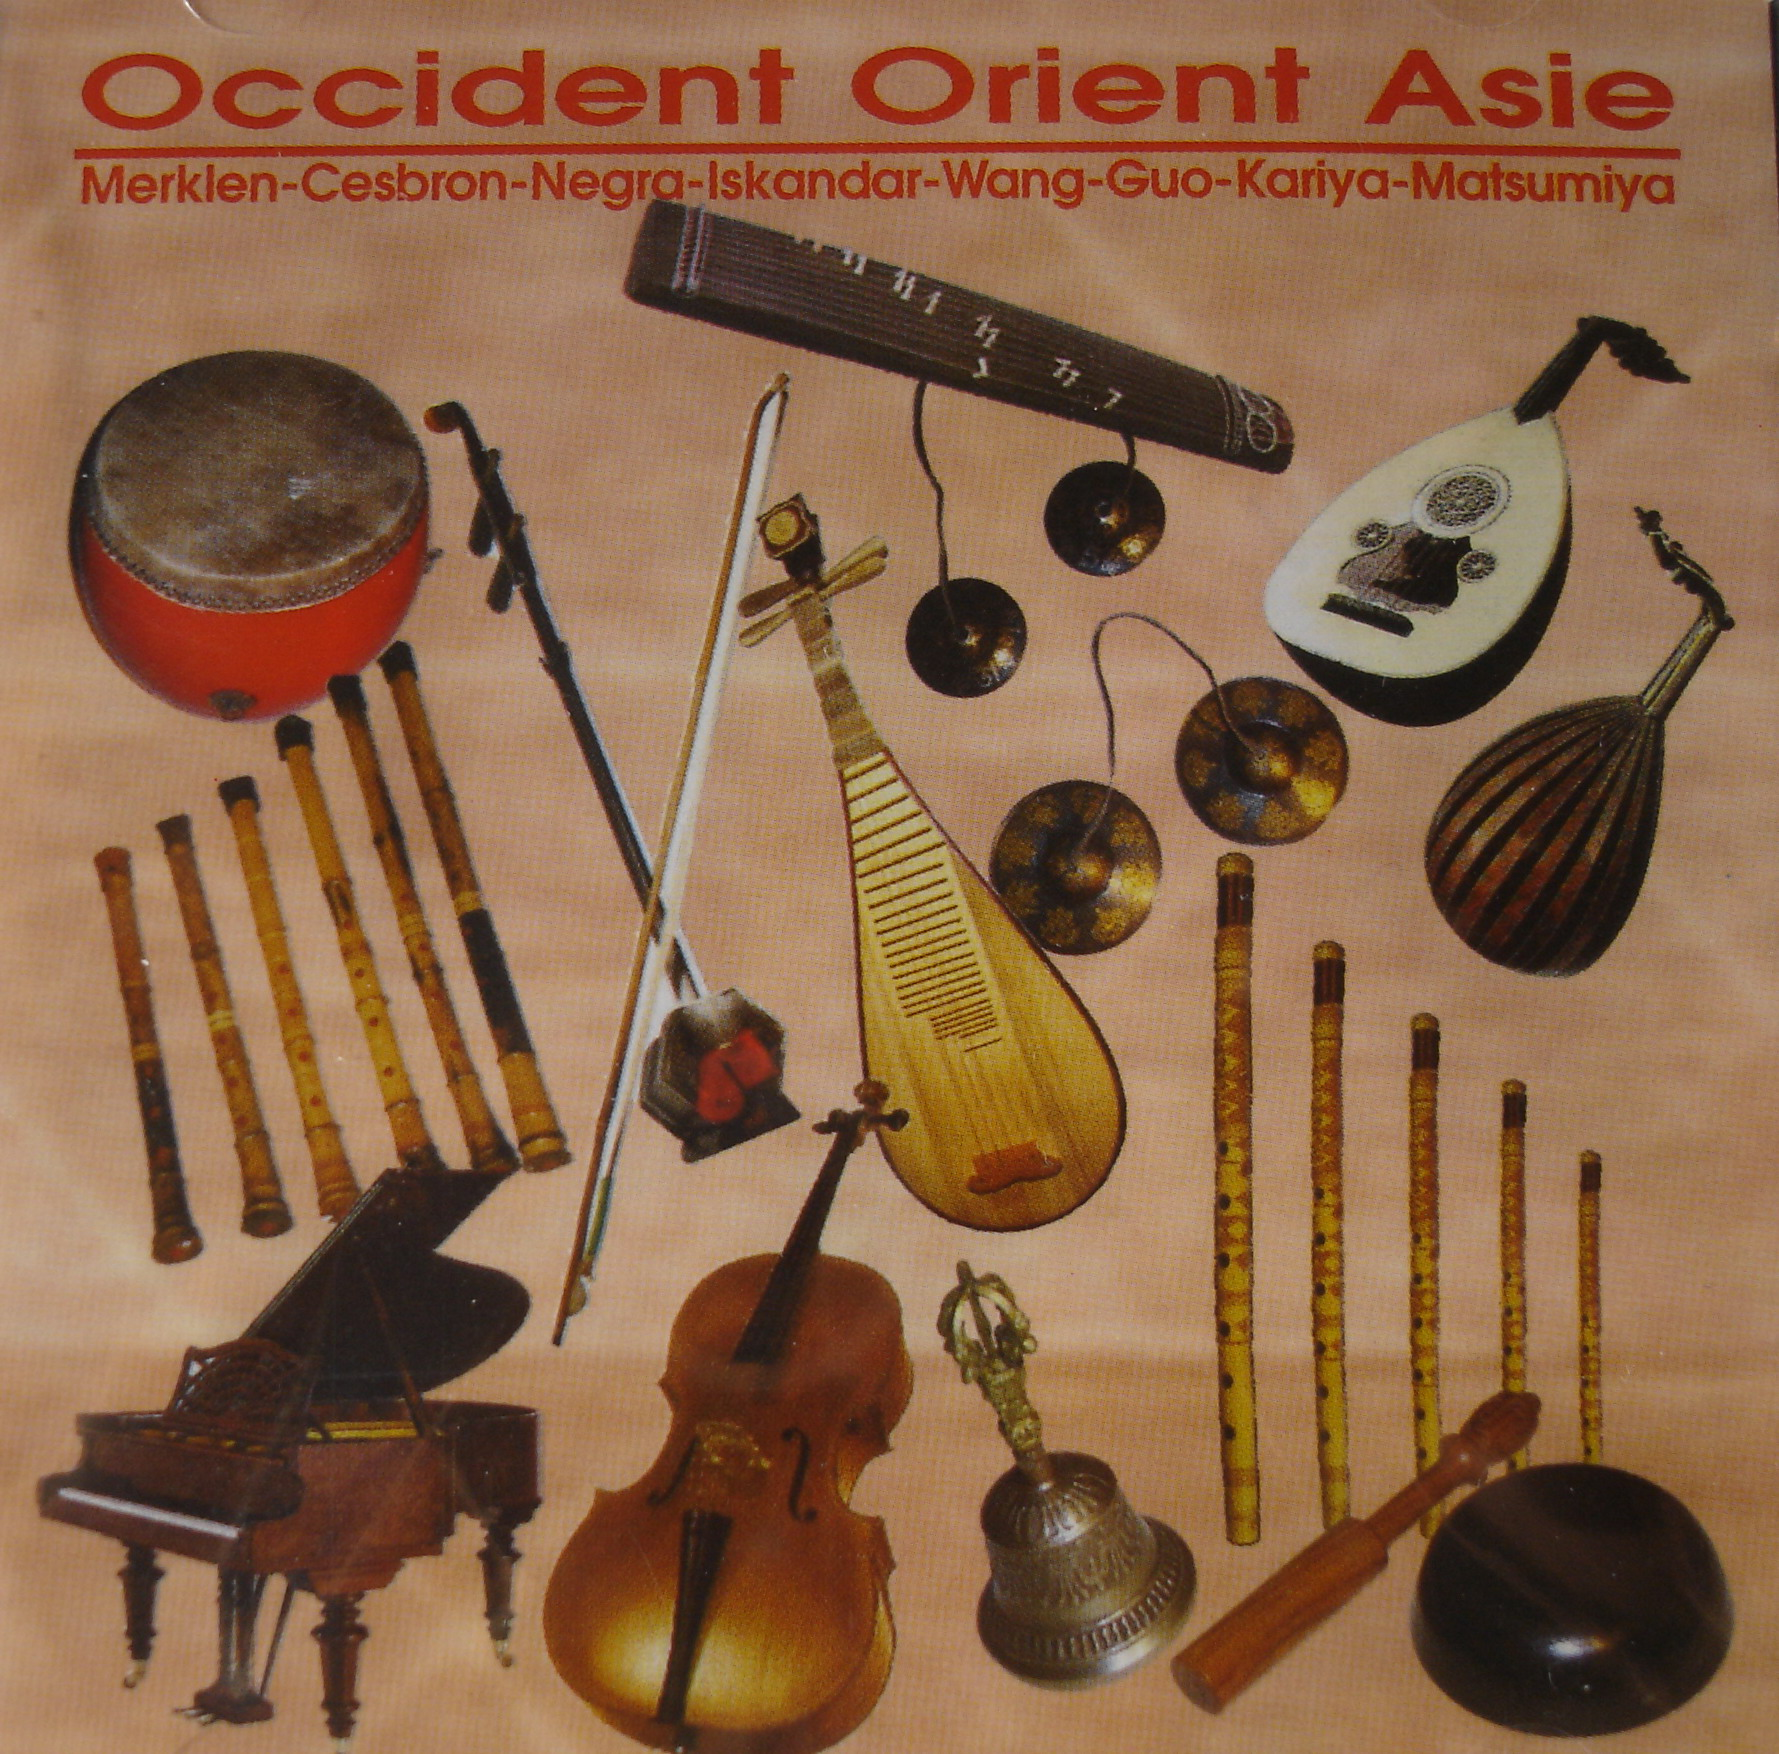 Occident Orient Asie